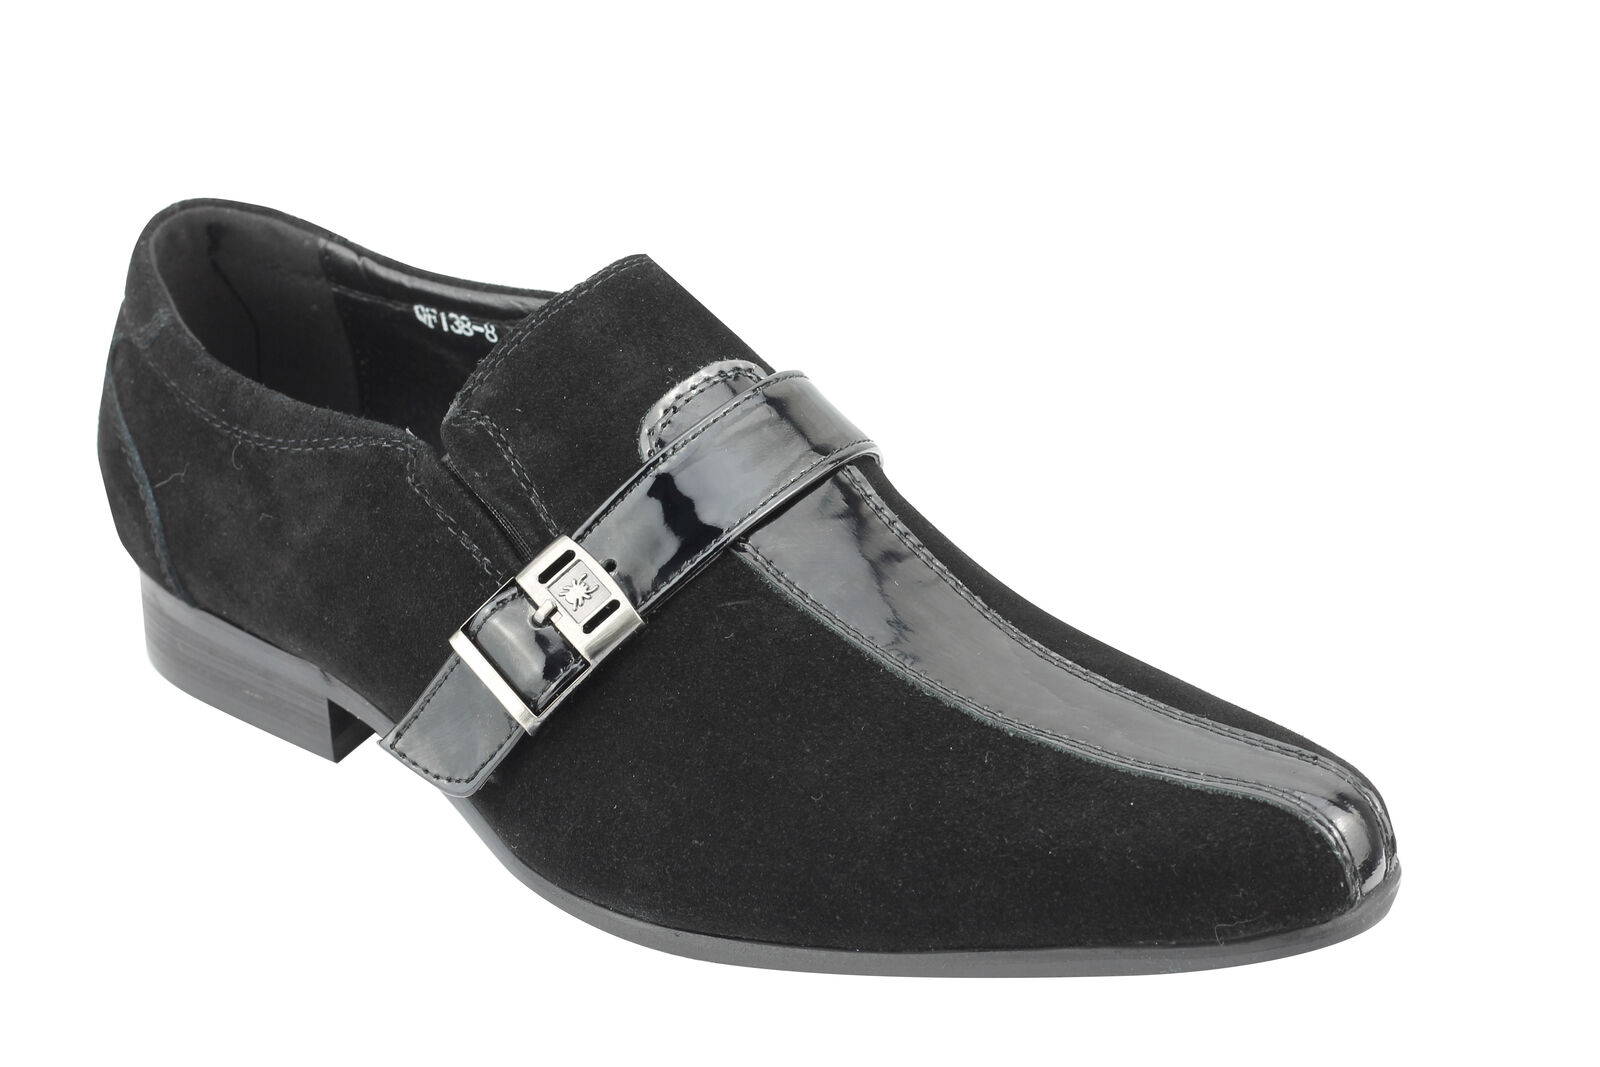 Mens Real Suede & Patent Leather Black Loafer Retro Intalian Style Slip on shoes